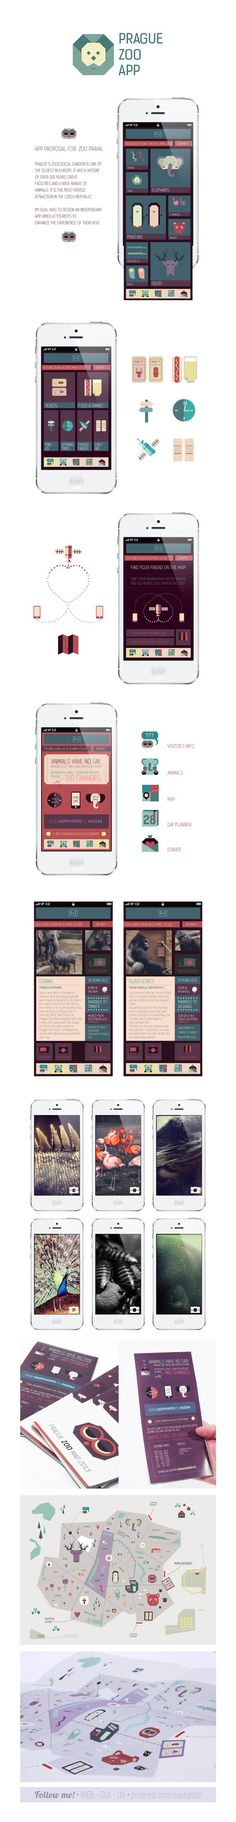 Prague Zoo application concept by Alina Kotova, on Behance *** #iphone #app #gui #ios